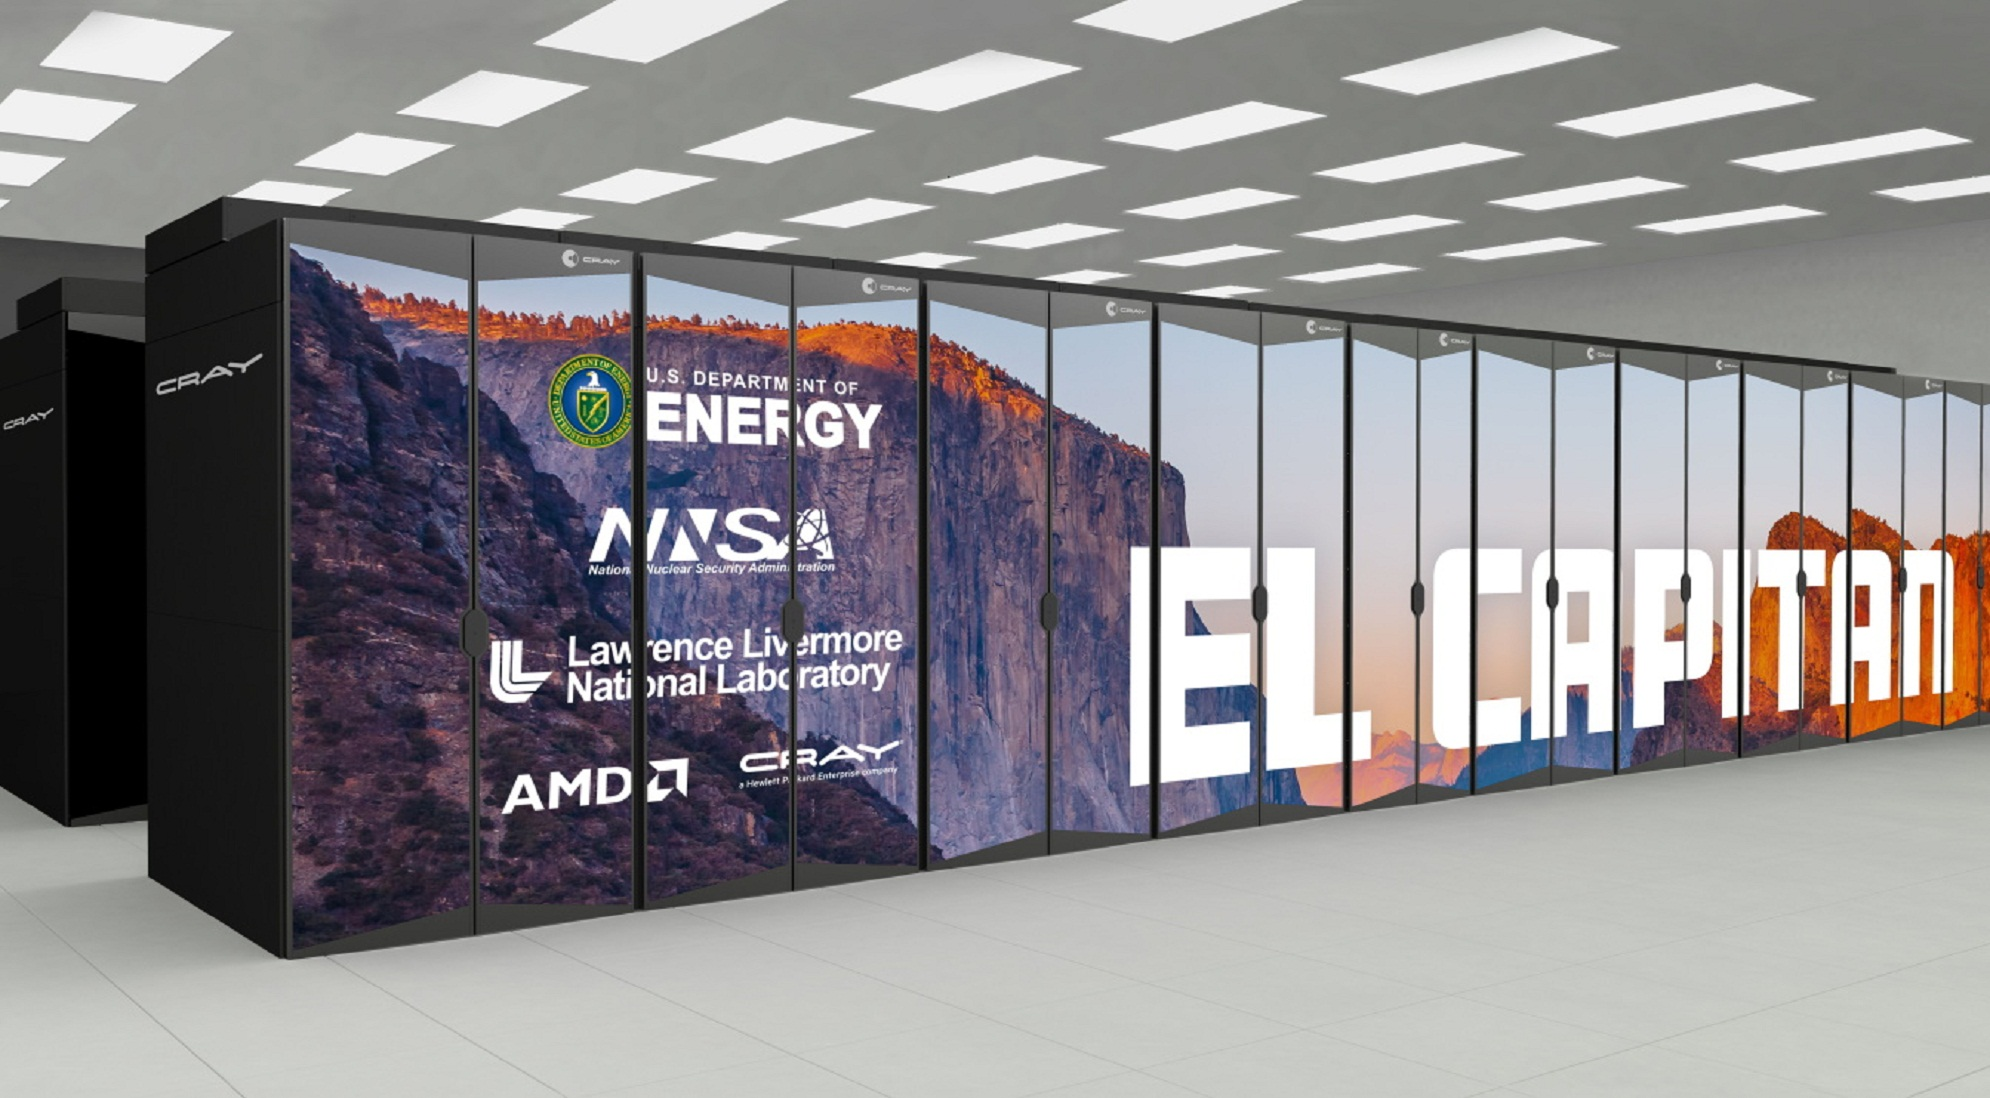 AMD EPYC CPU Partners With Radeon Instinct GPU In Conjunction With LLNL To Build the Fastest of Supercomputers; El Capitan